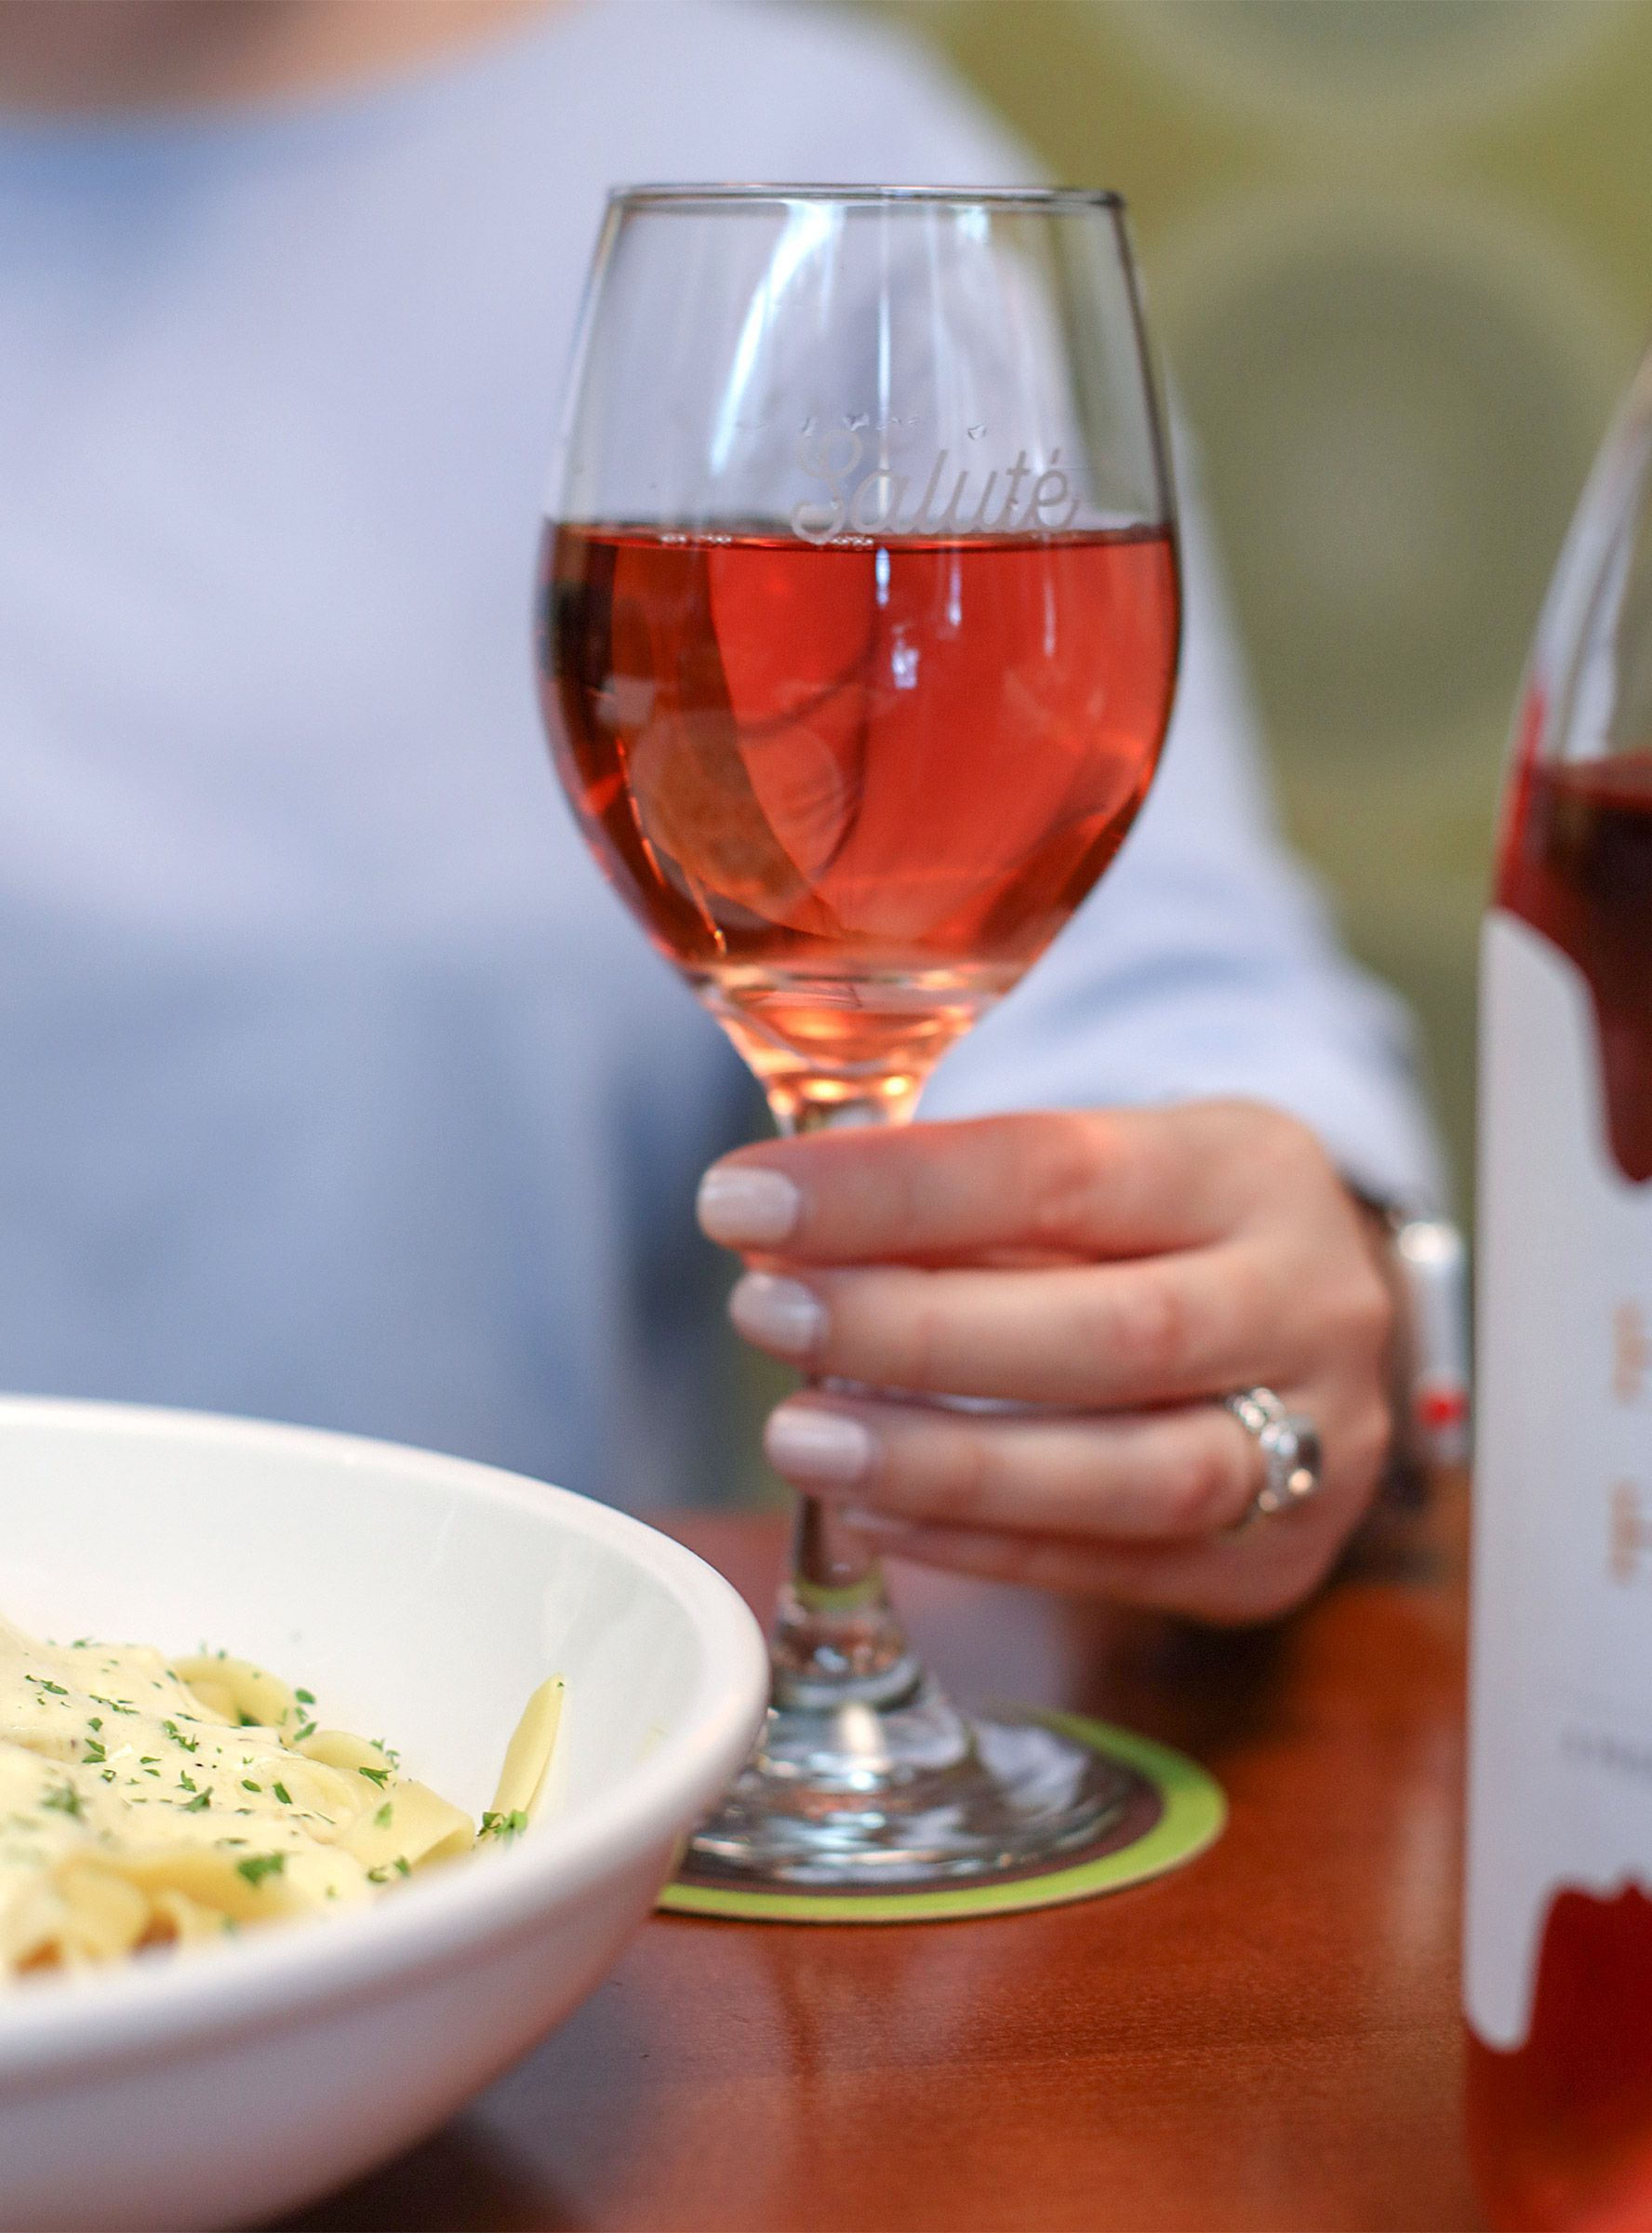 Olive Garden Launched Its Own Rosé To Go With Those